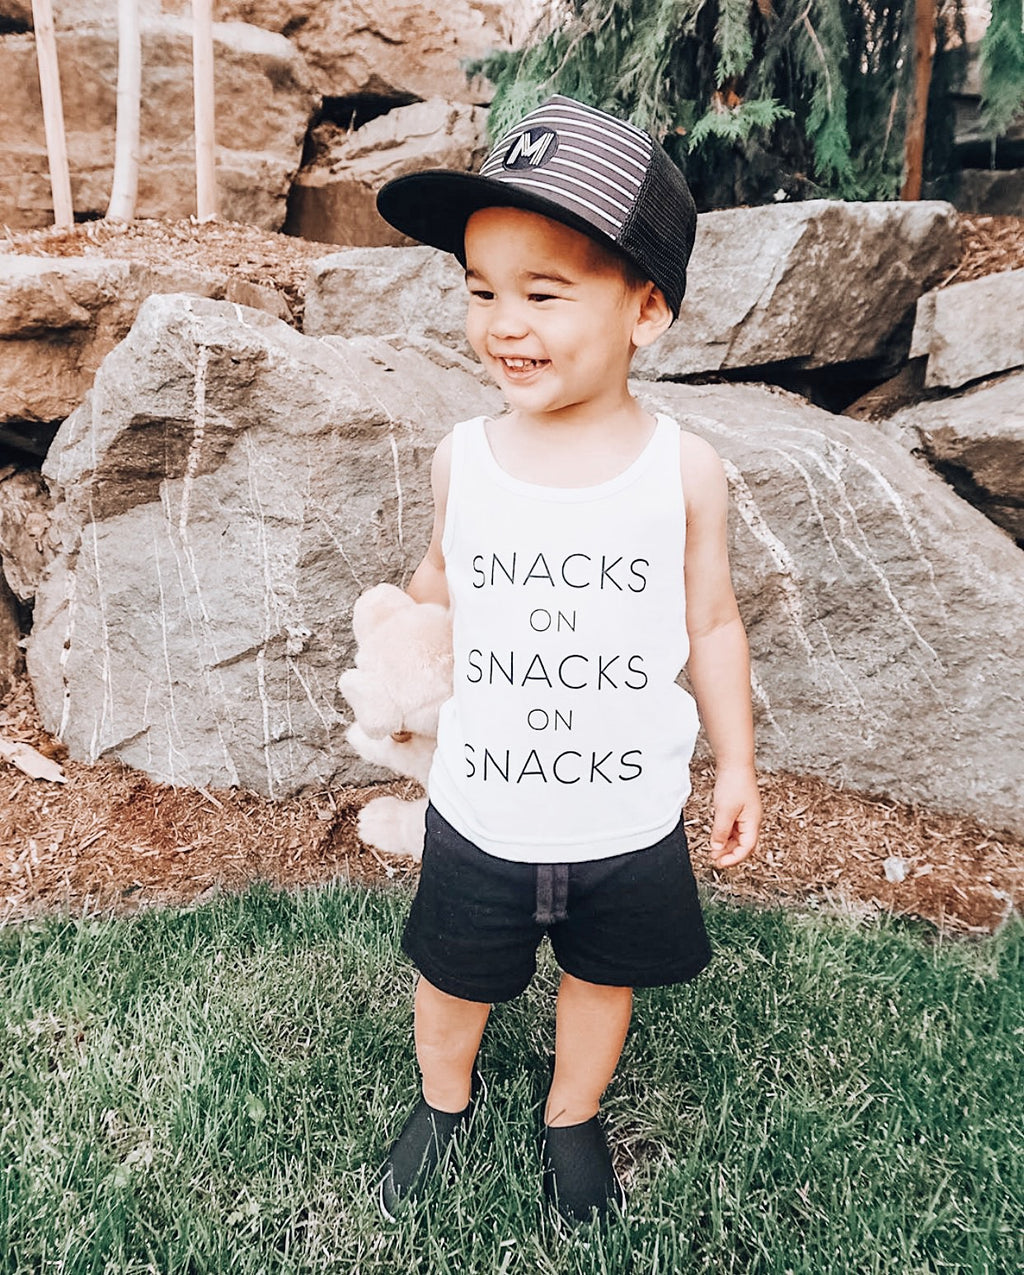 """Snacks on Snacks on Snacks"" White Child Tank Top"